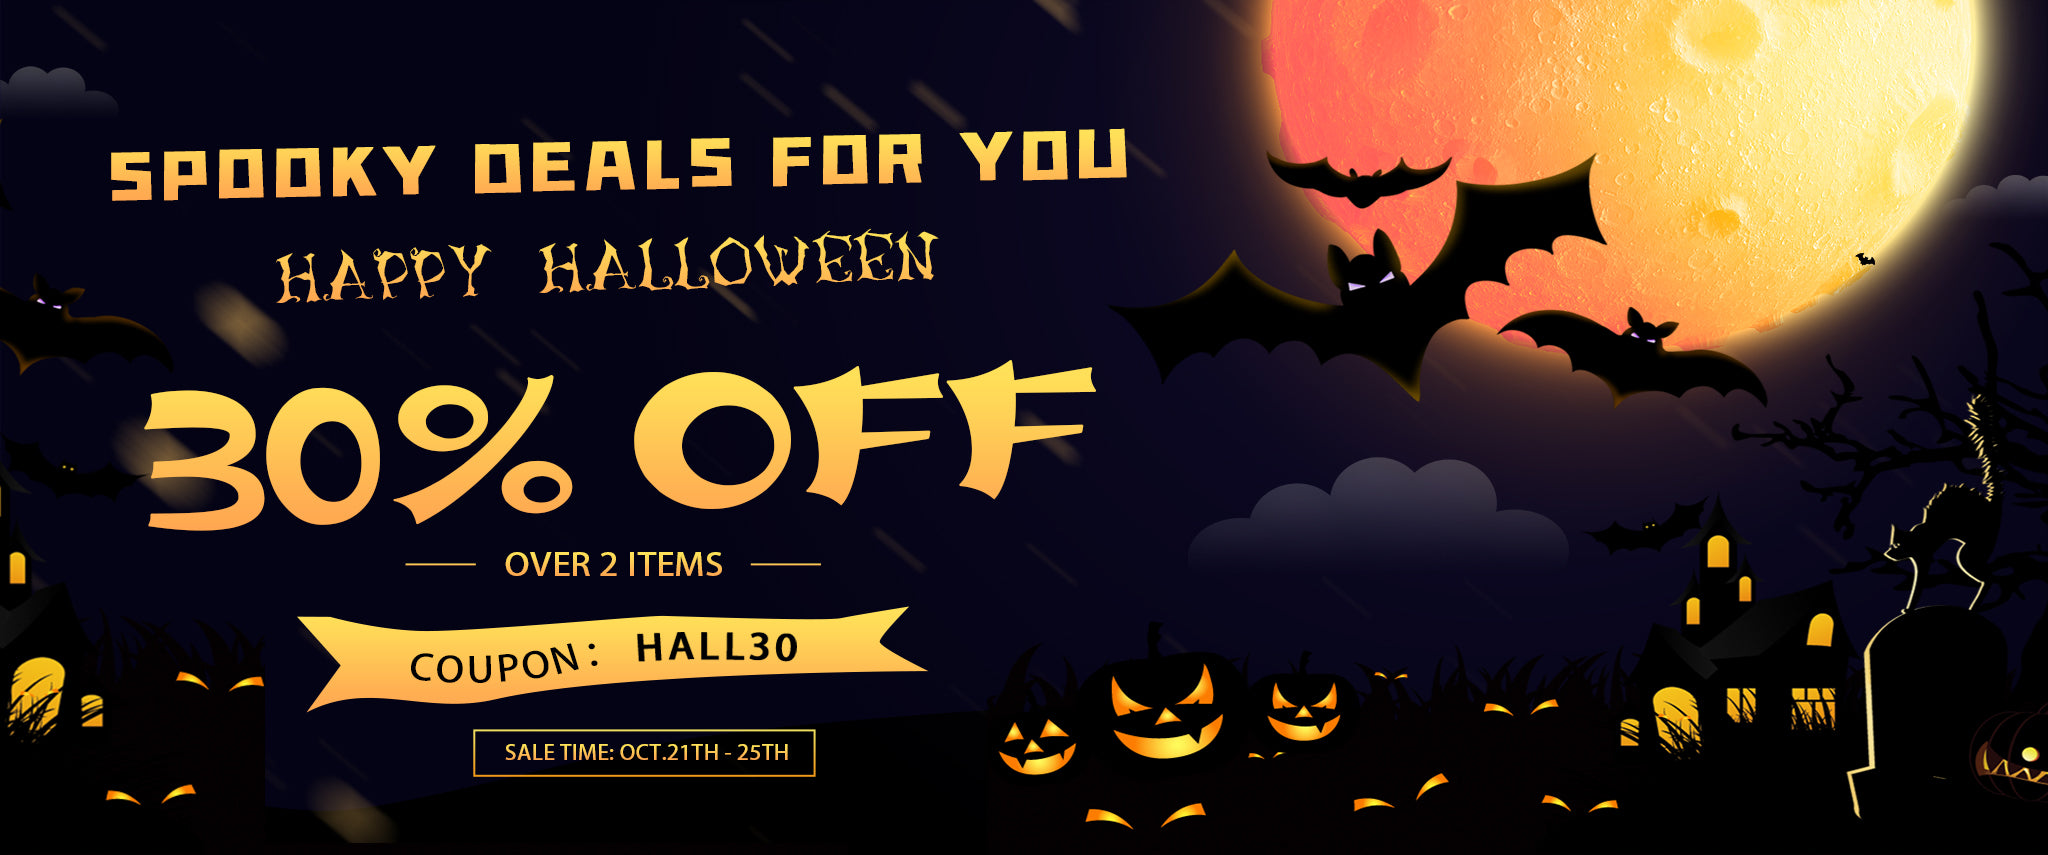 halloween flash sale 30% off 2 items amazing beauty hair extensions